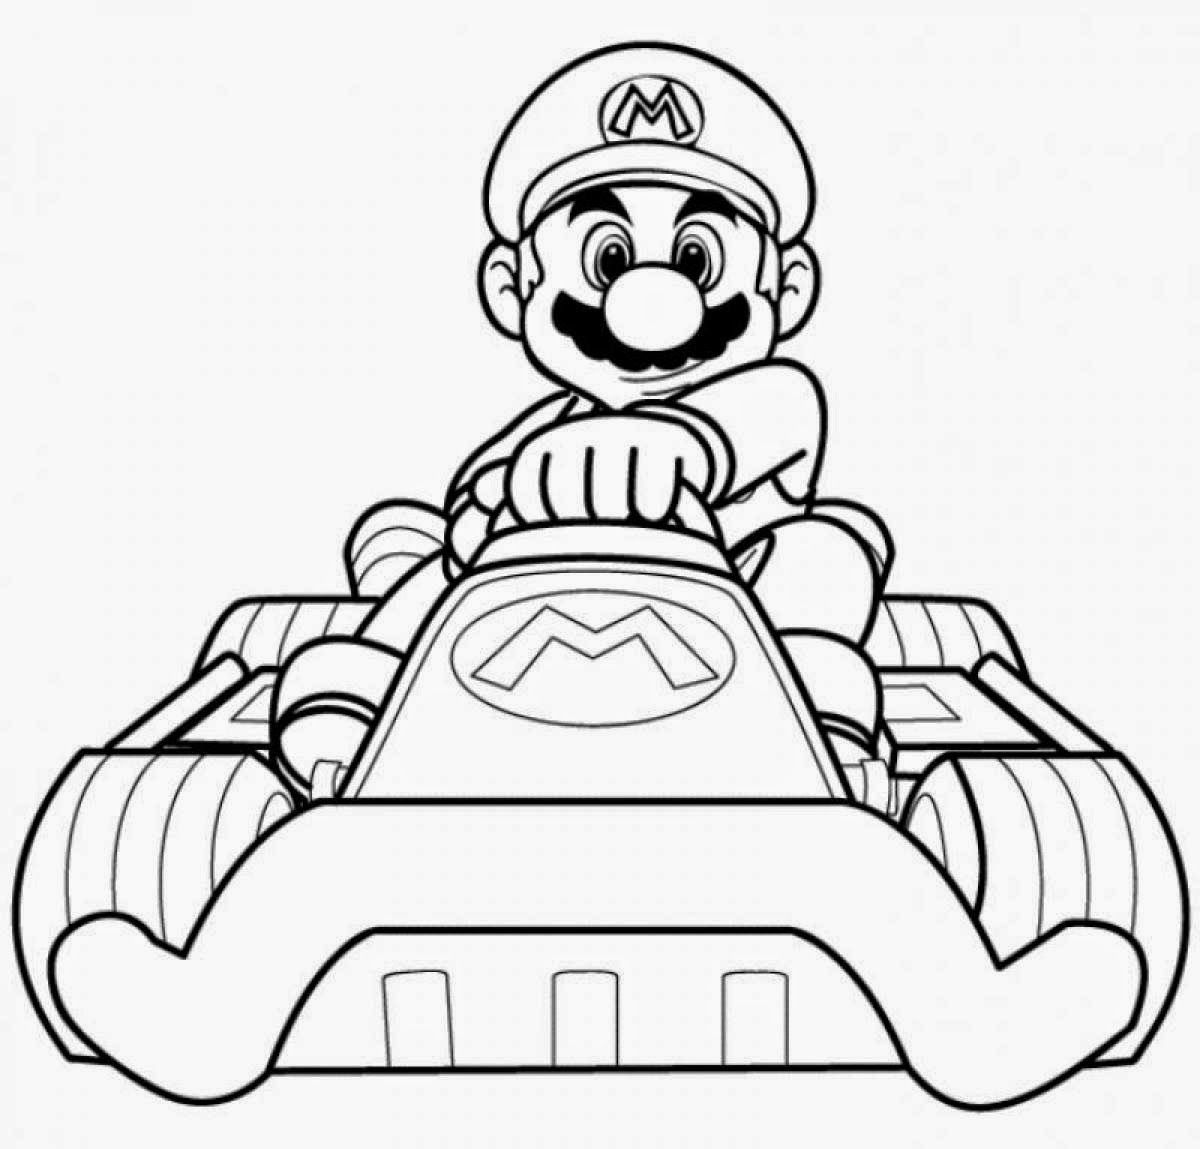 Mario kart coloring pages for kids az coloring pages for What color is mario